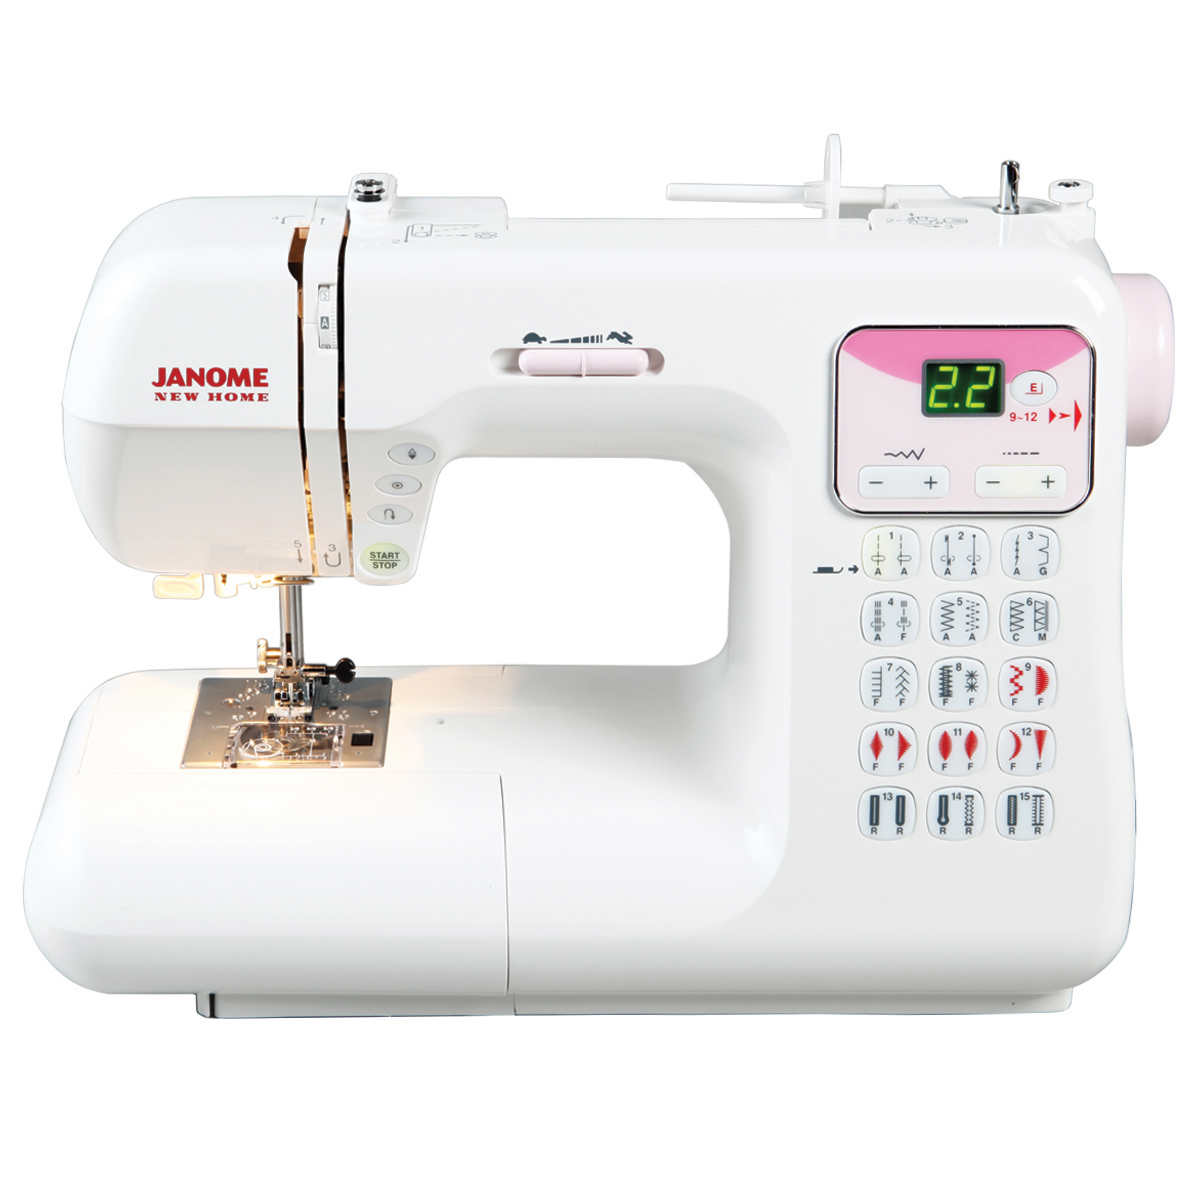 Janome memory craft 6500p - Member Only Item